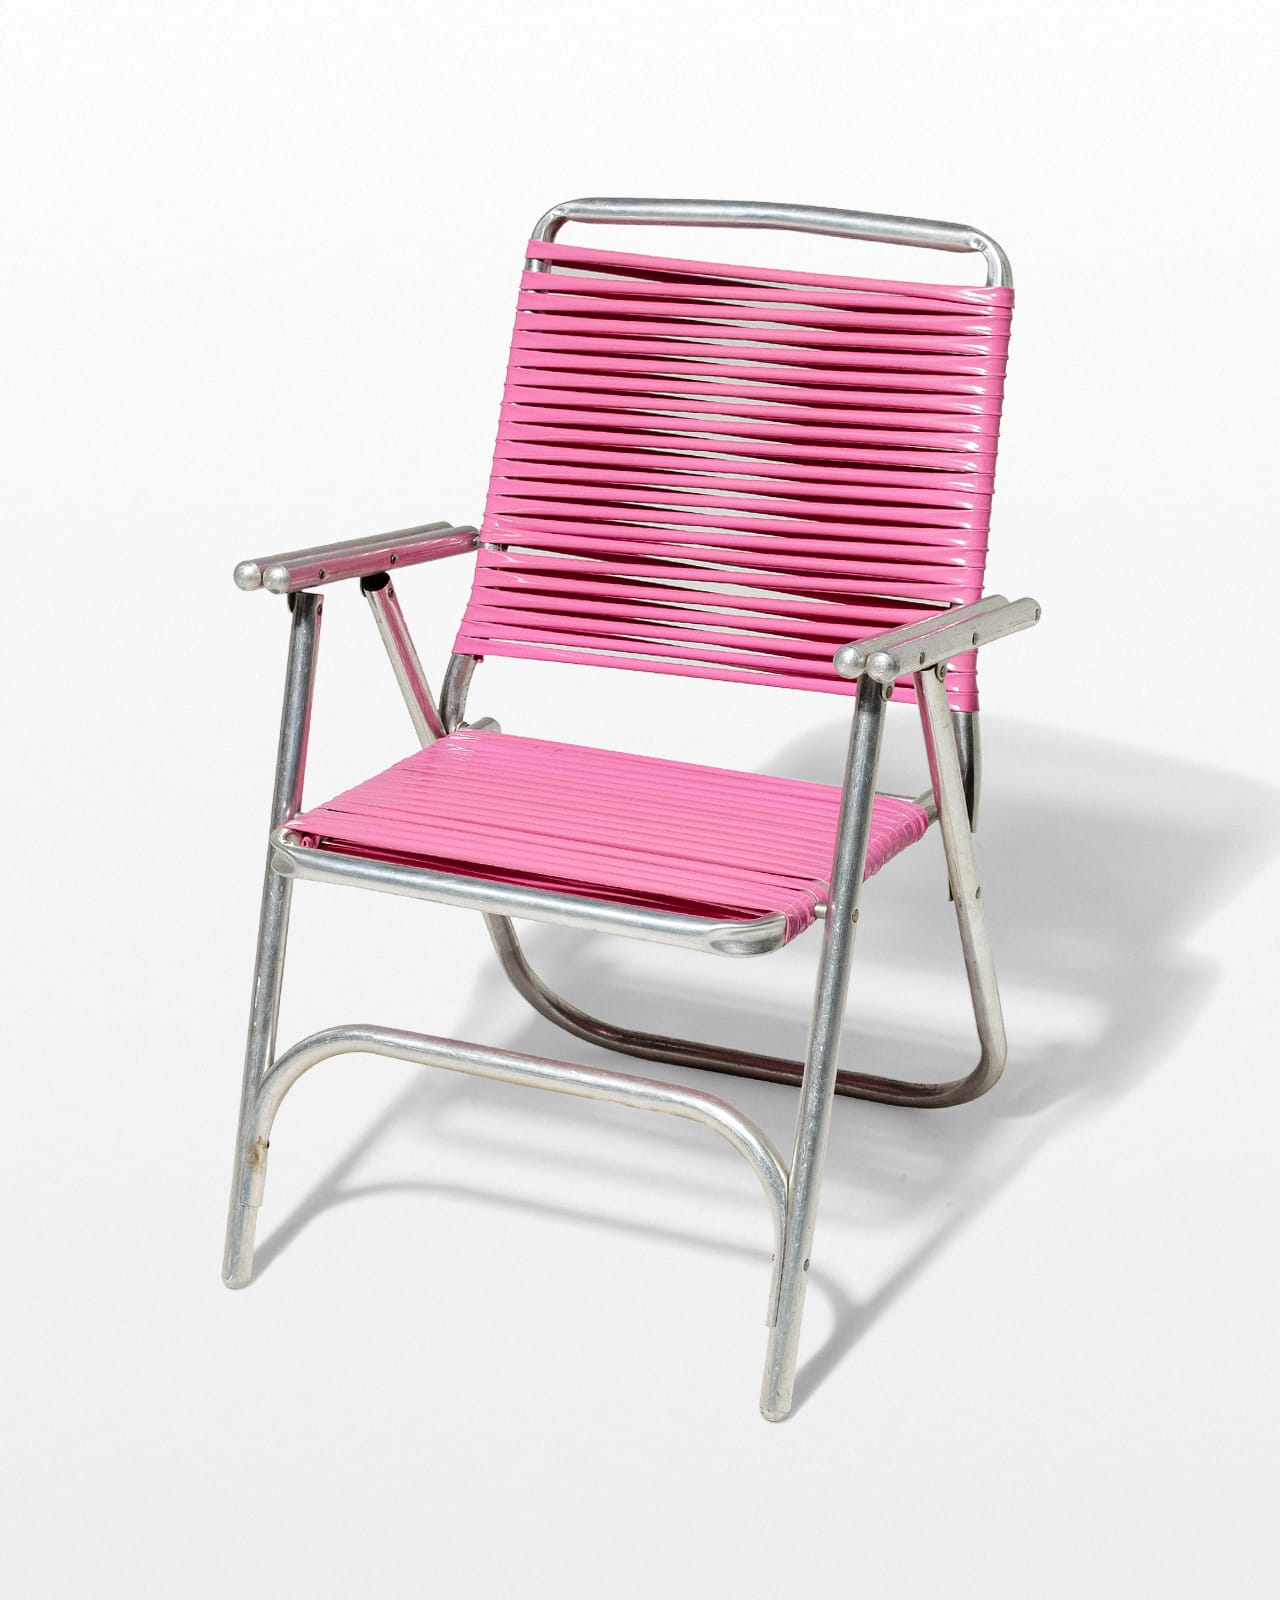 pink beach chair bed ch447 victoria folding prop rental acme brooklyn front view of